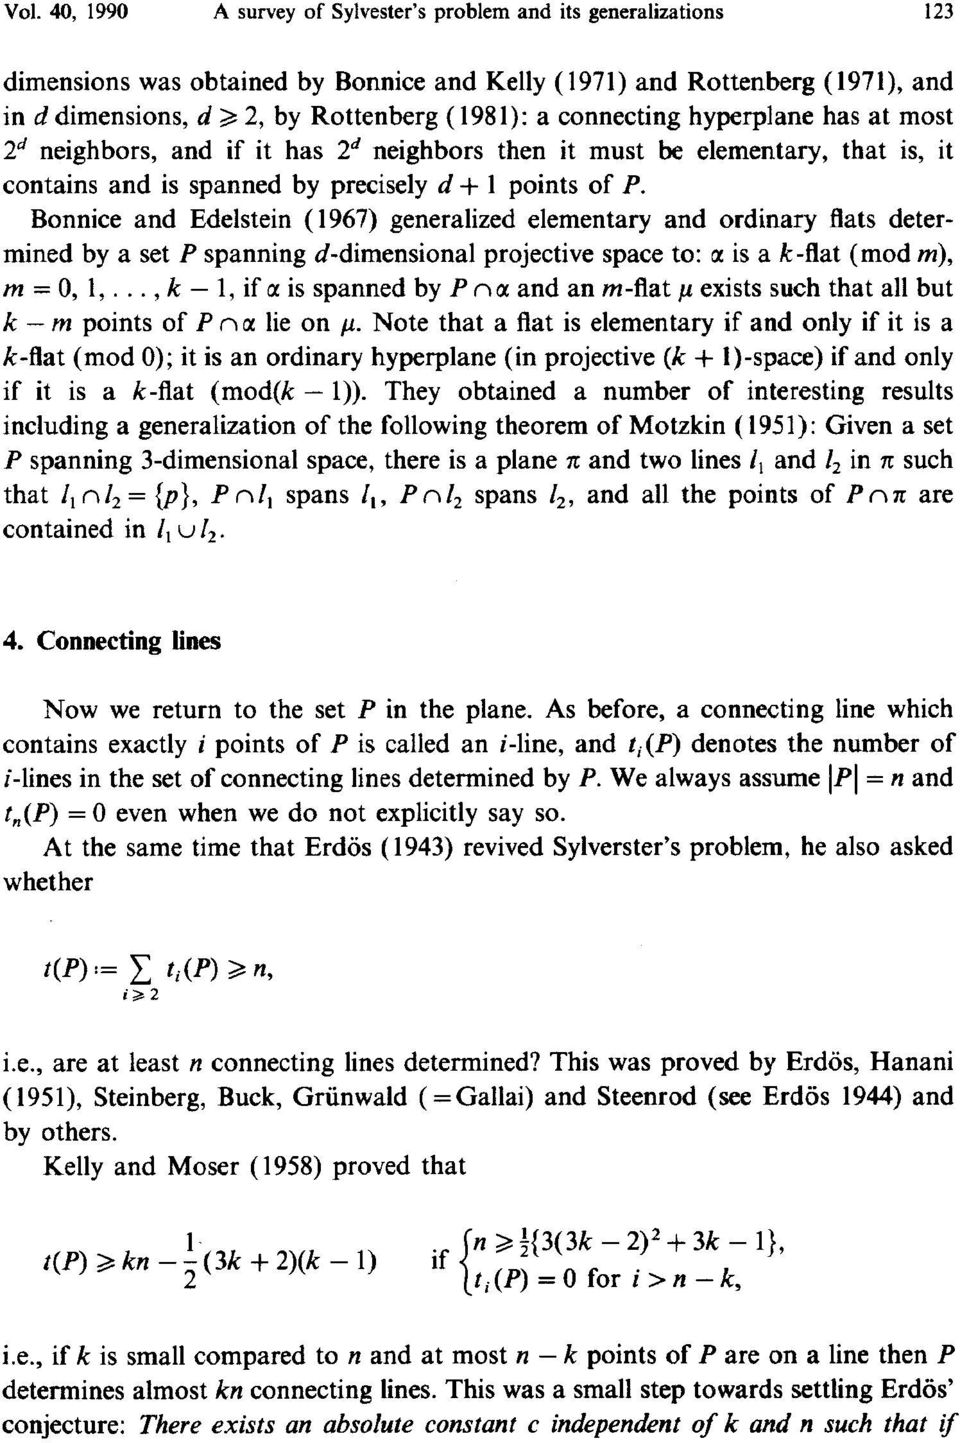 Bonnice and Edelstein (1967) generalized elementary and ordinary fiats determined by a set P spanning d-dimensional projective space to: is a k-fiat (mod m), m = 0, 1,.